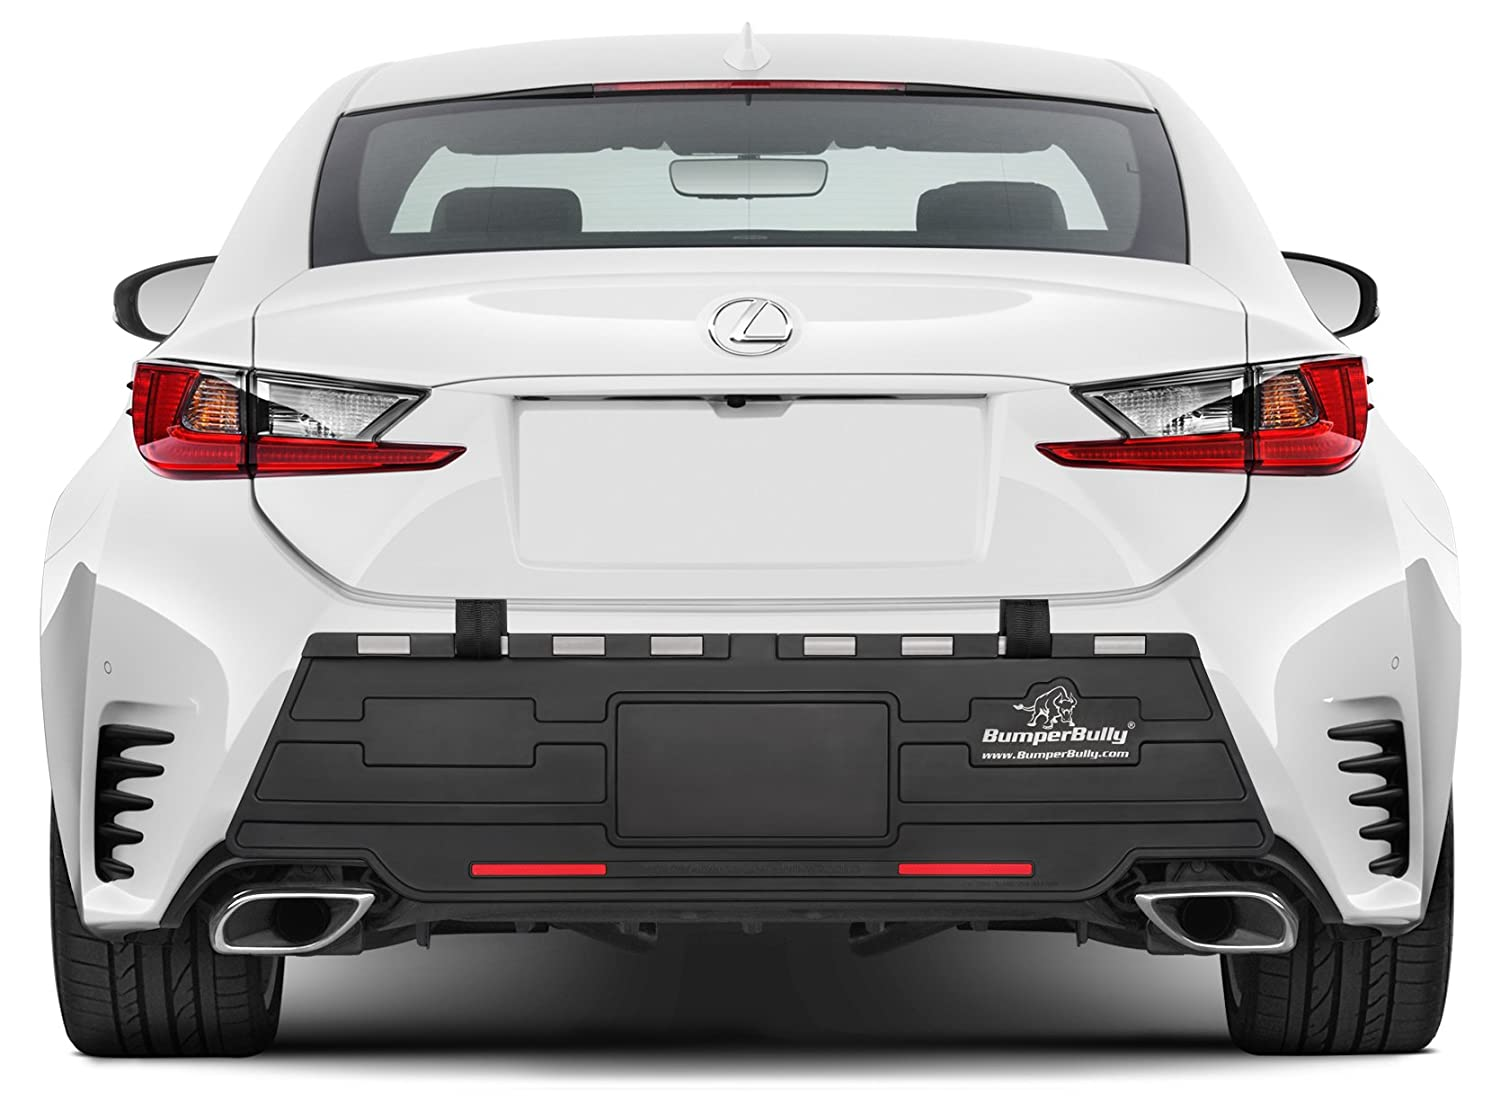 Design of a car bumper - Amazon Com Platinum Edition Bumper Bully With Impact Pads The Thickest Strongest Largest Bumper Protector Bumper Guard Bumper Protection